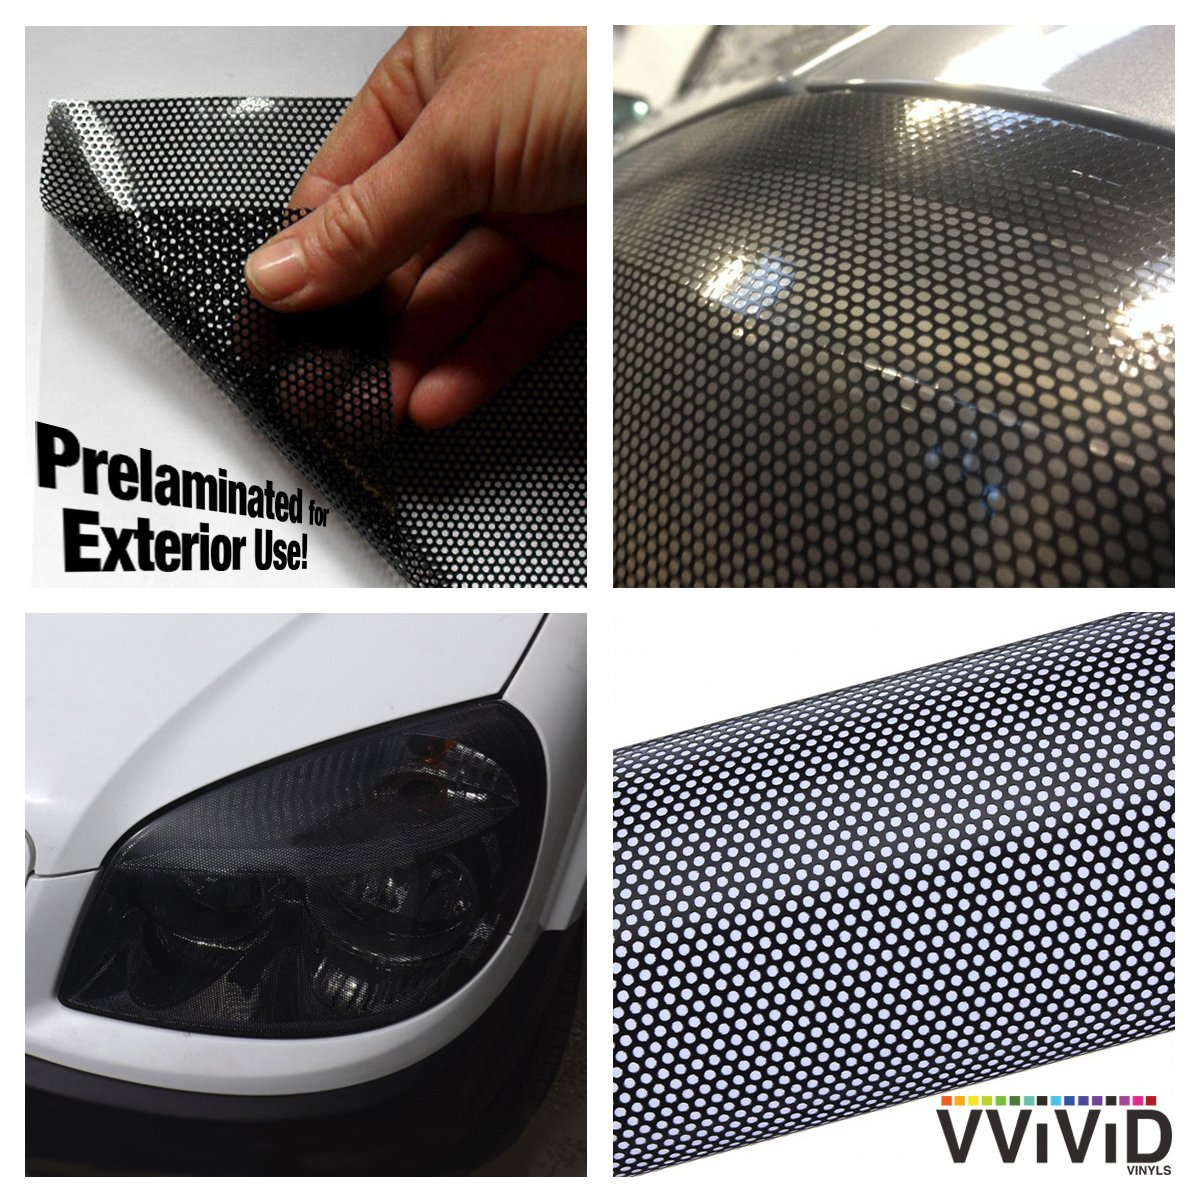 17.9 x 48 VViViD Black Perforated Headlight Vinyl Wrap Self-Adhesive DIY Cover Roll